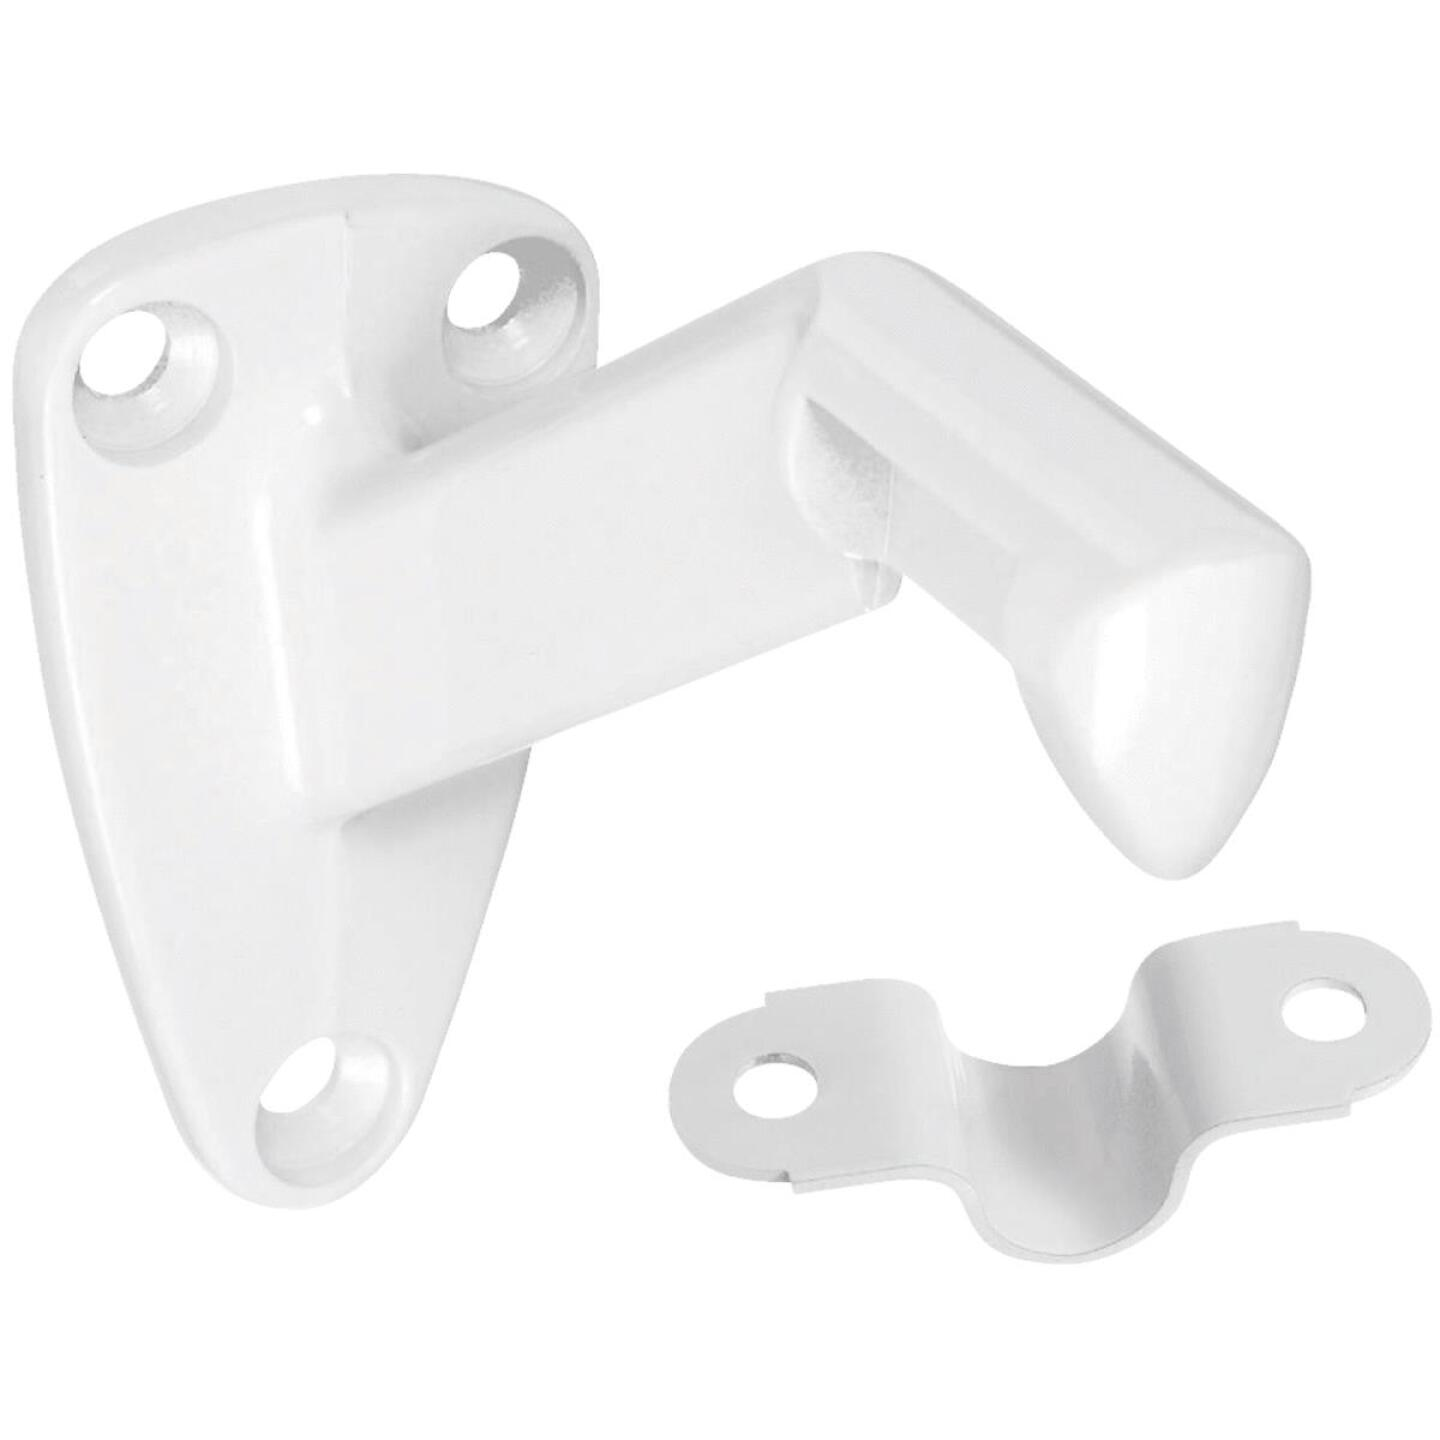 National White Zinc Die-Cast With Steel Strap Handrail Bracket Image 1